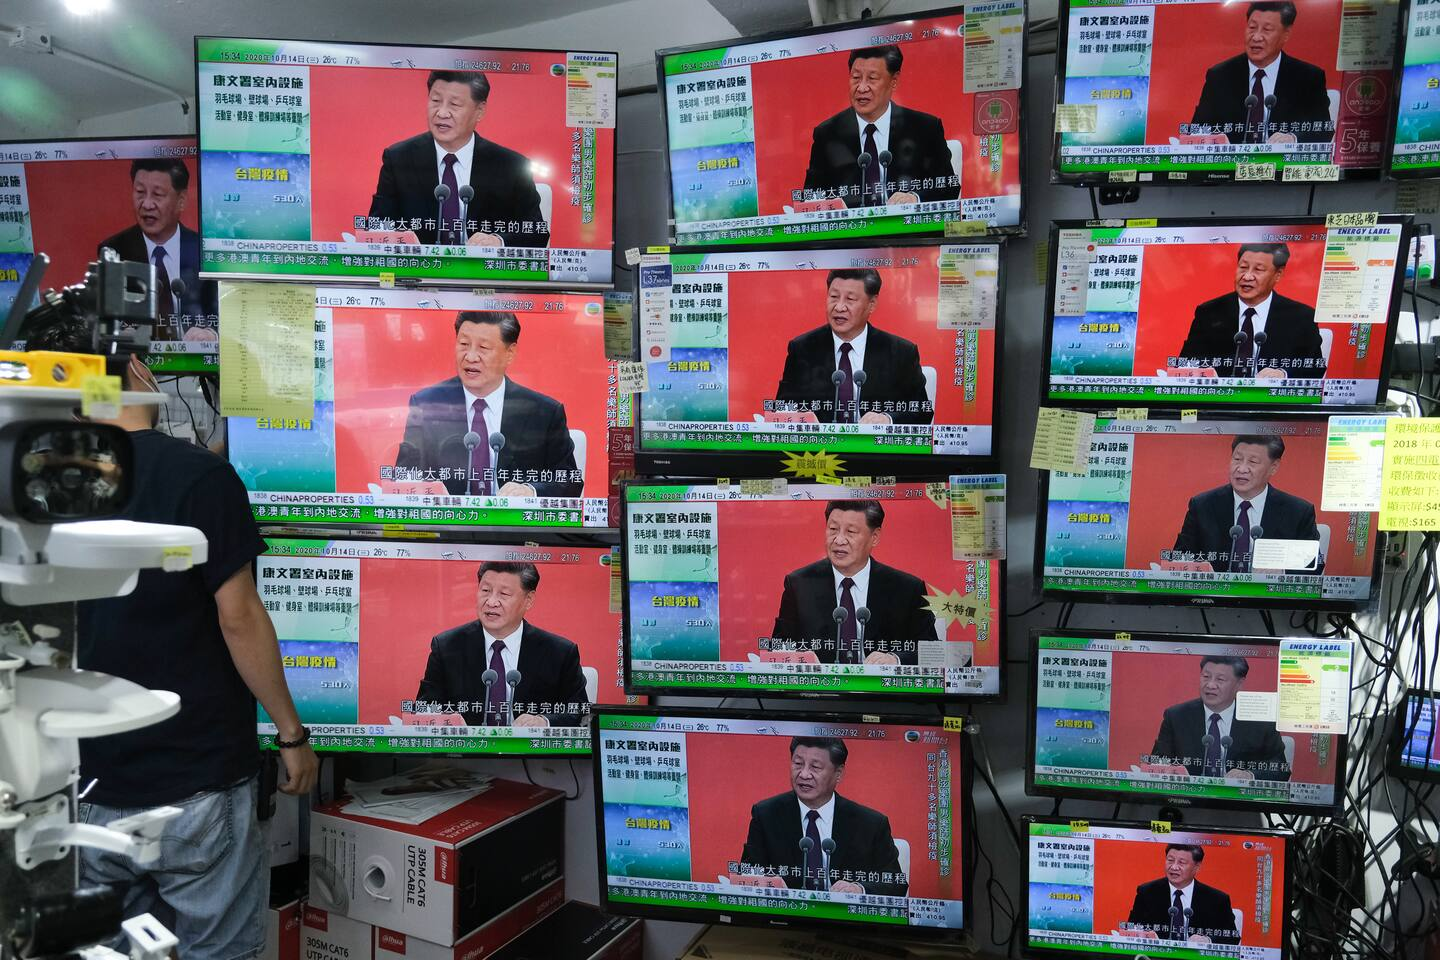 A news report on Chinese leader Xi Jinping's speech in the city of Shenzhen is shown on television screens inside a store in Hong Kong on Wednesday.